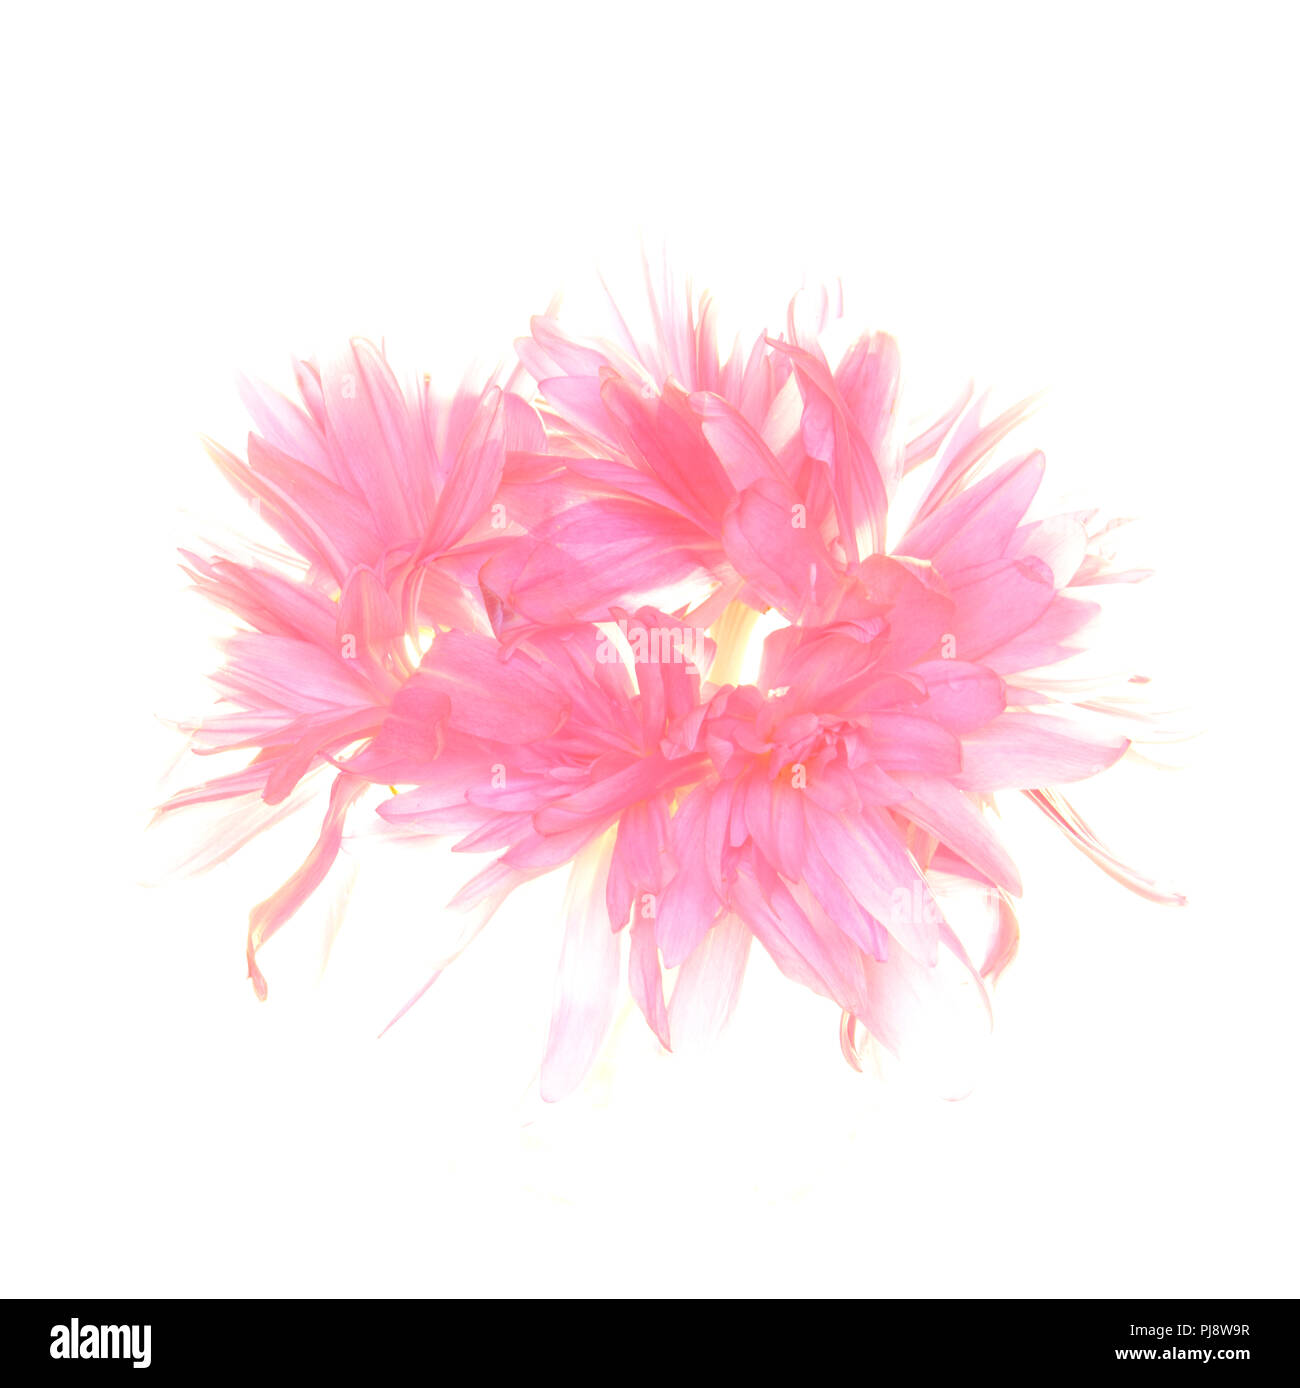 A Ring Of Pink Flowers On A White Background Stock Photo 217783715